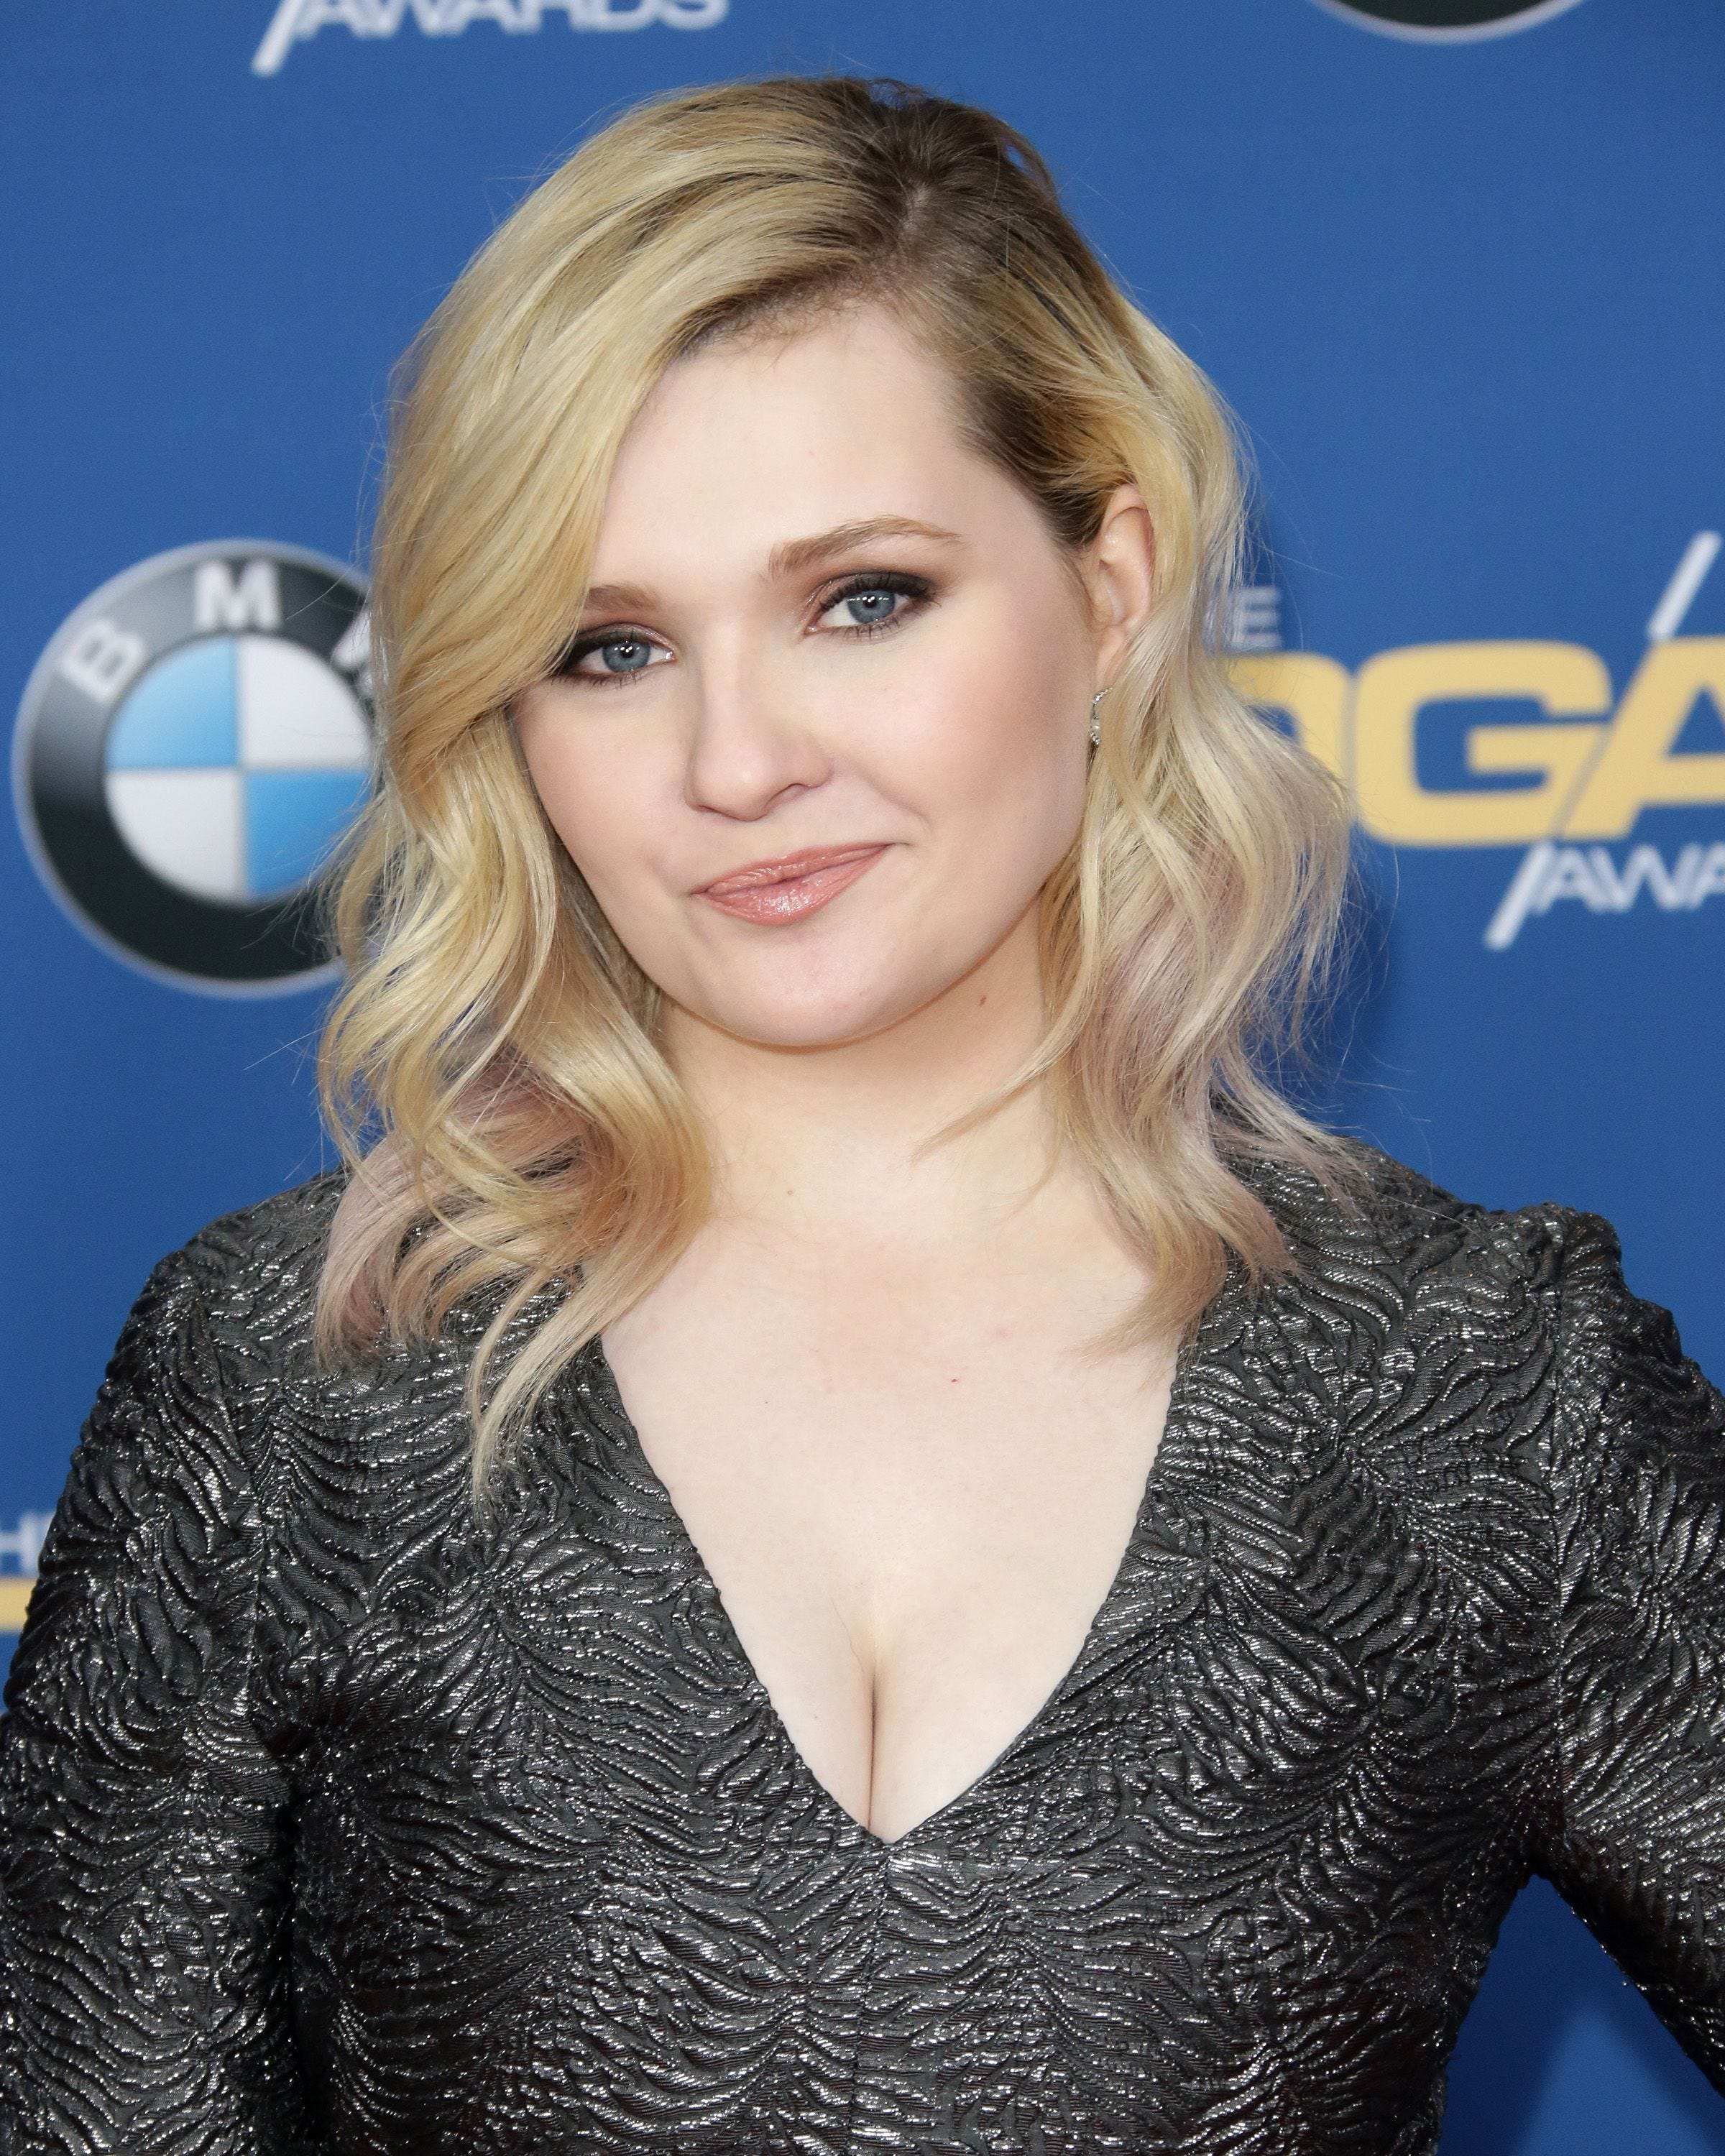 Instagram Abigail Breslin naked (43 foto and video), Pussy, Bikini, Selfie, braless 2019